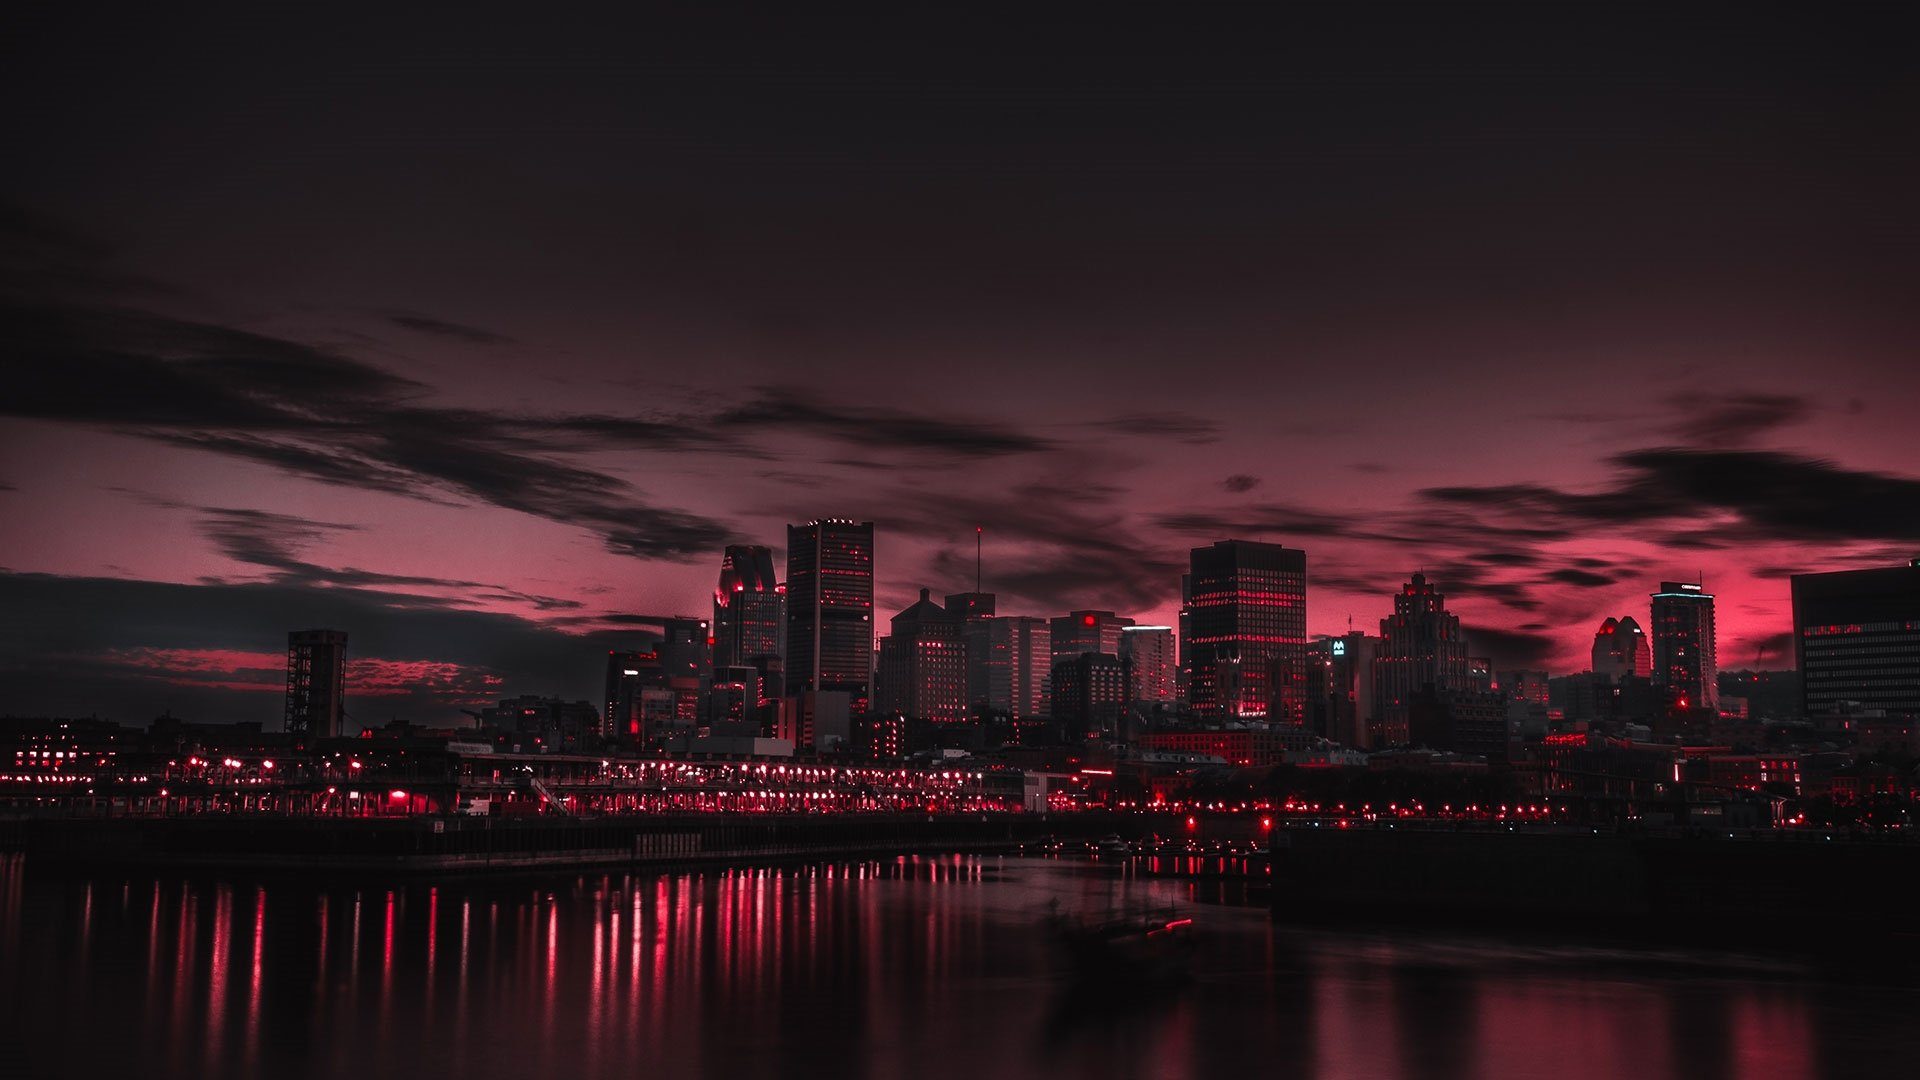 Red Aesthetic Wallpaper Download Full